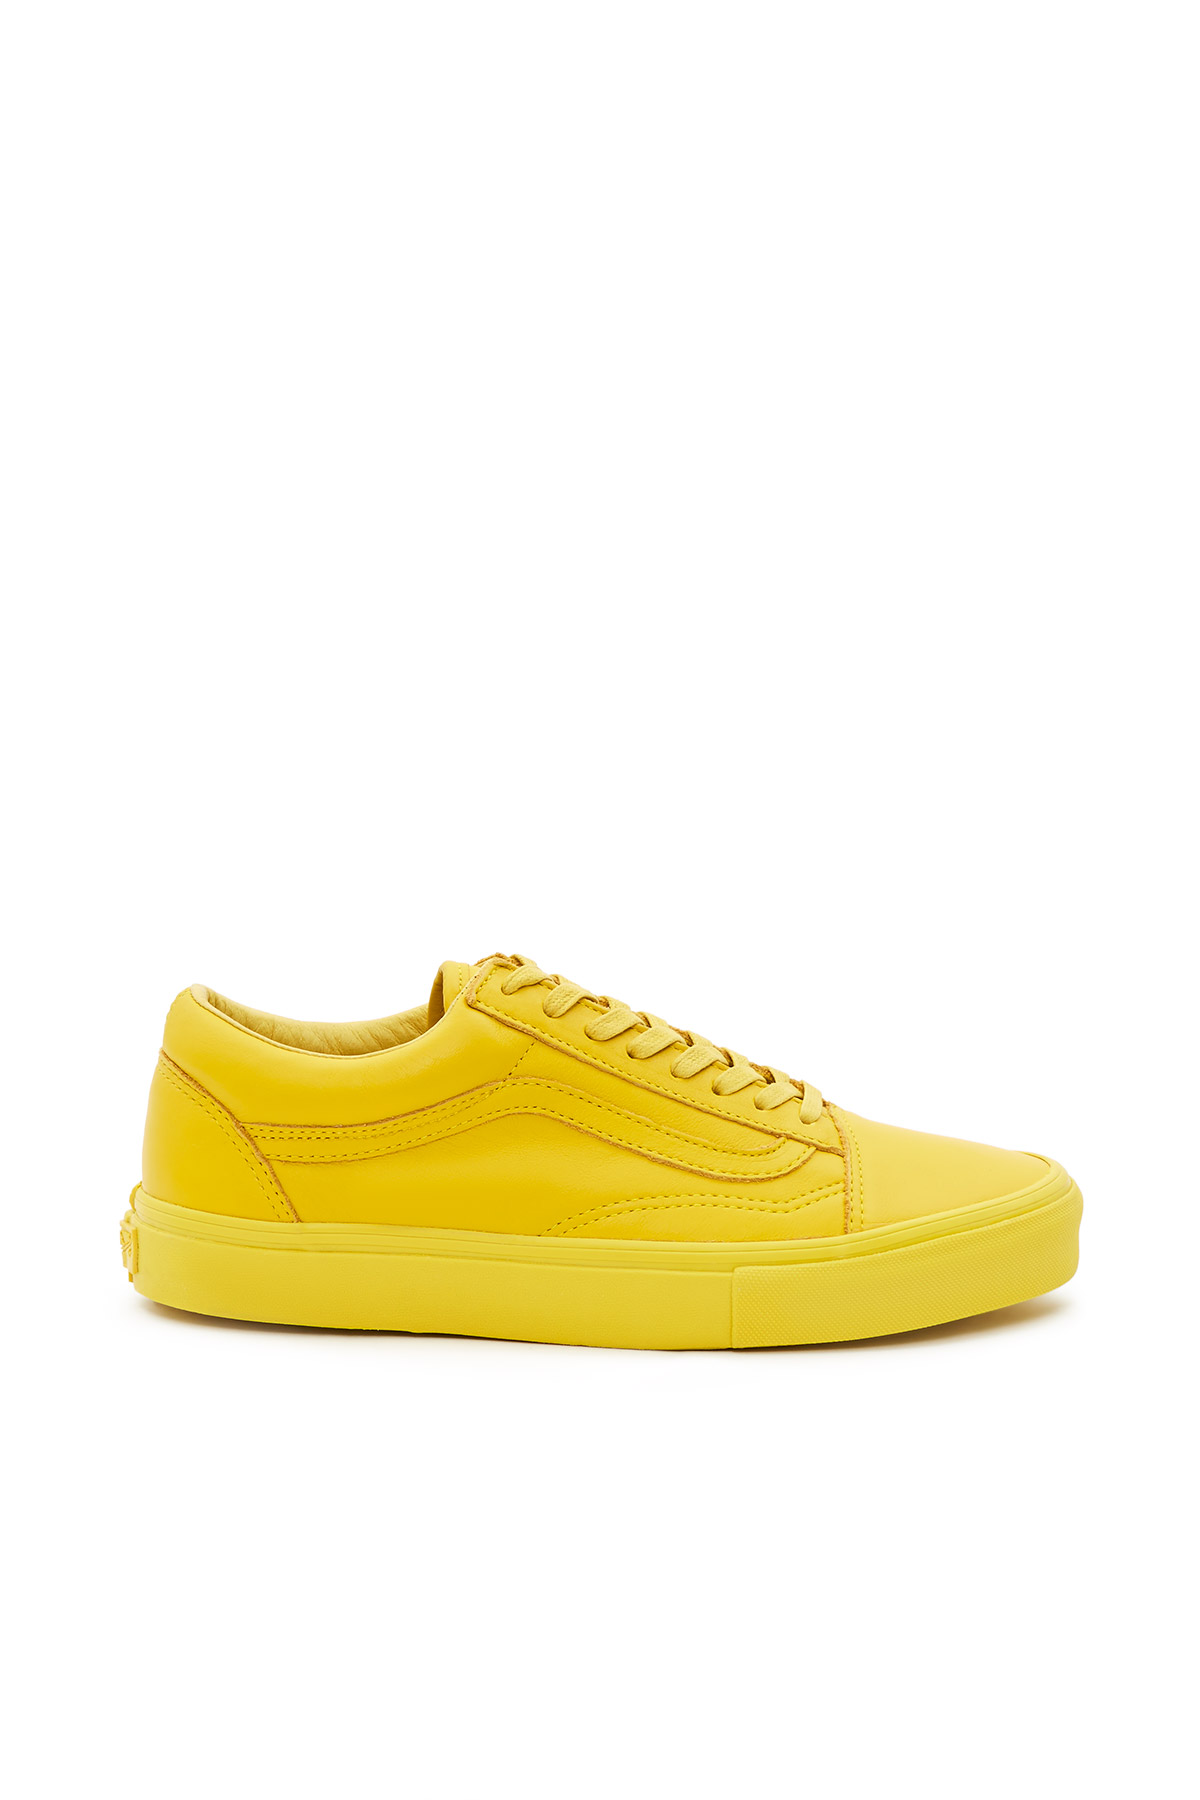 """Opening Ceremony x Vans """"Passion Pack"""""""